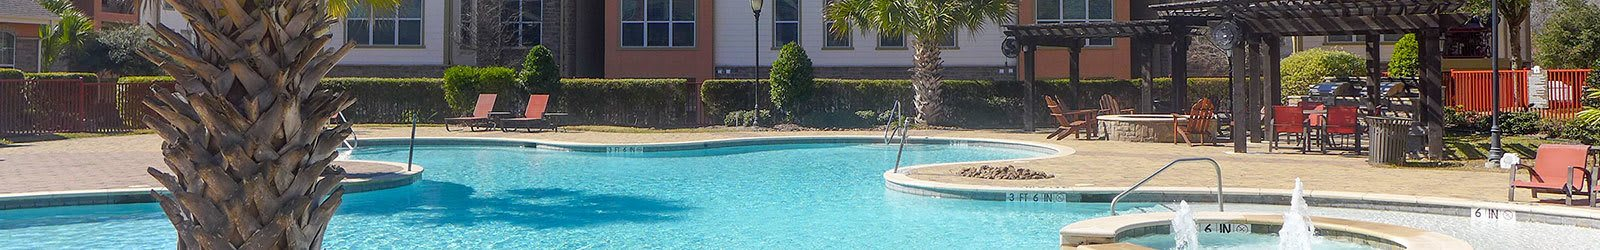 Resident information for the apartments for rent in Conroe